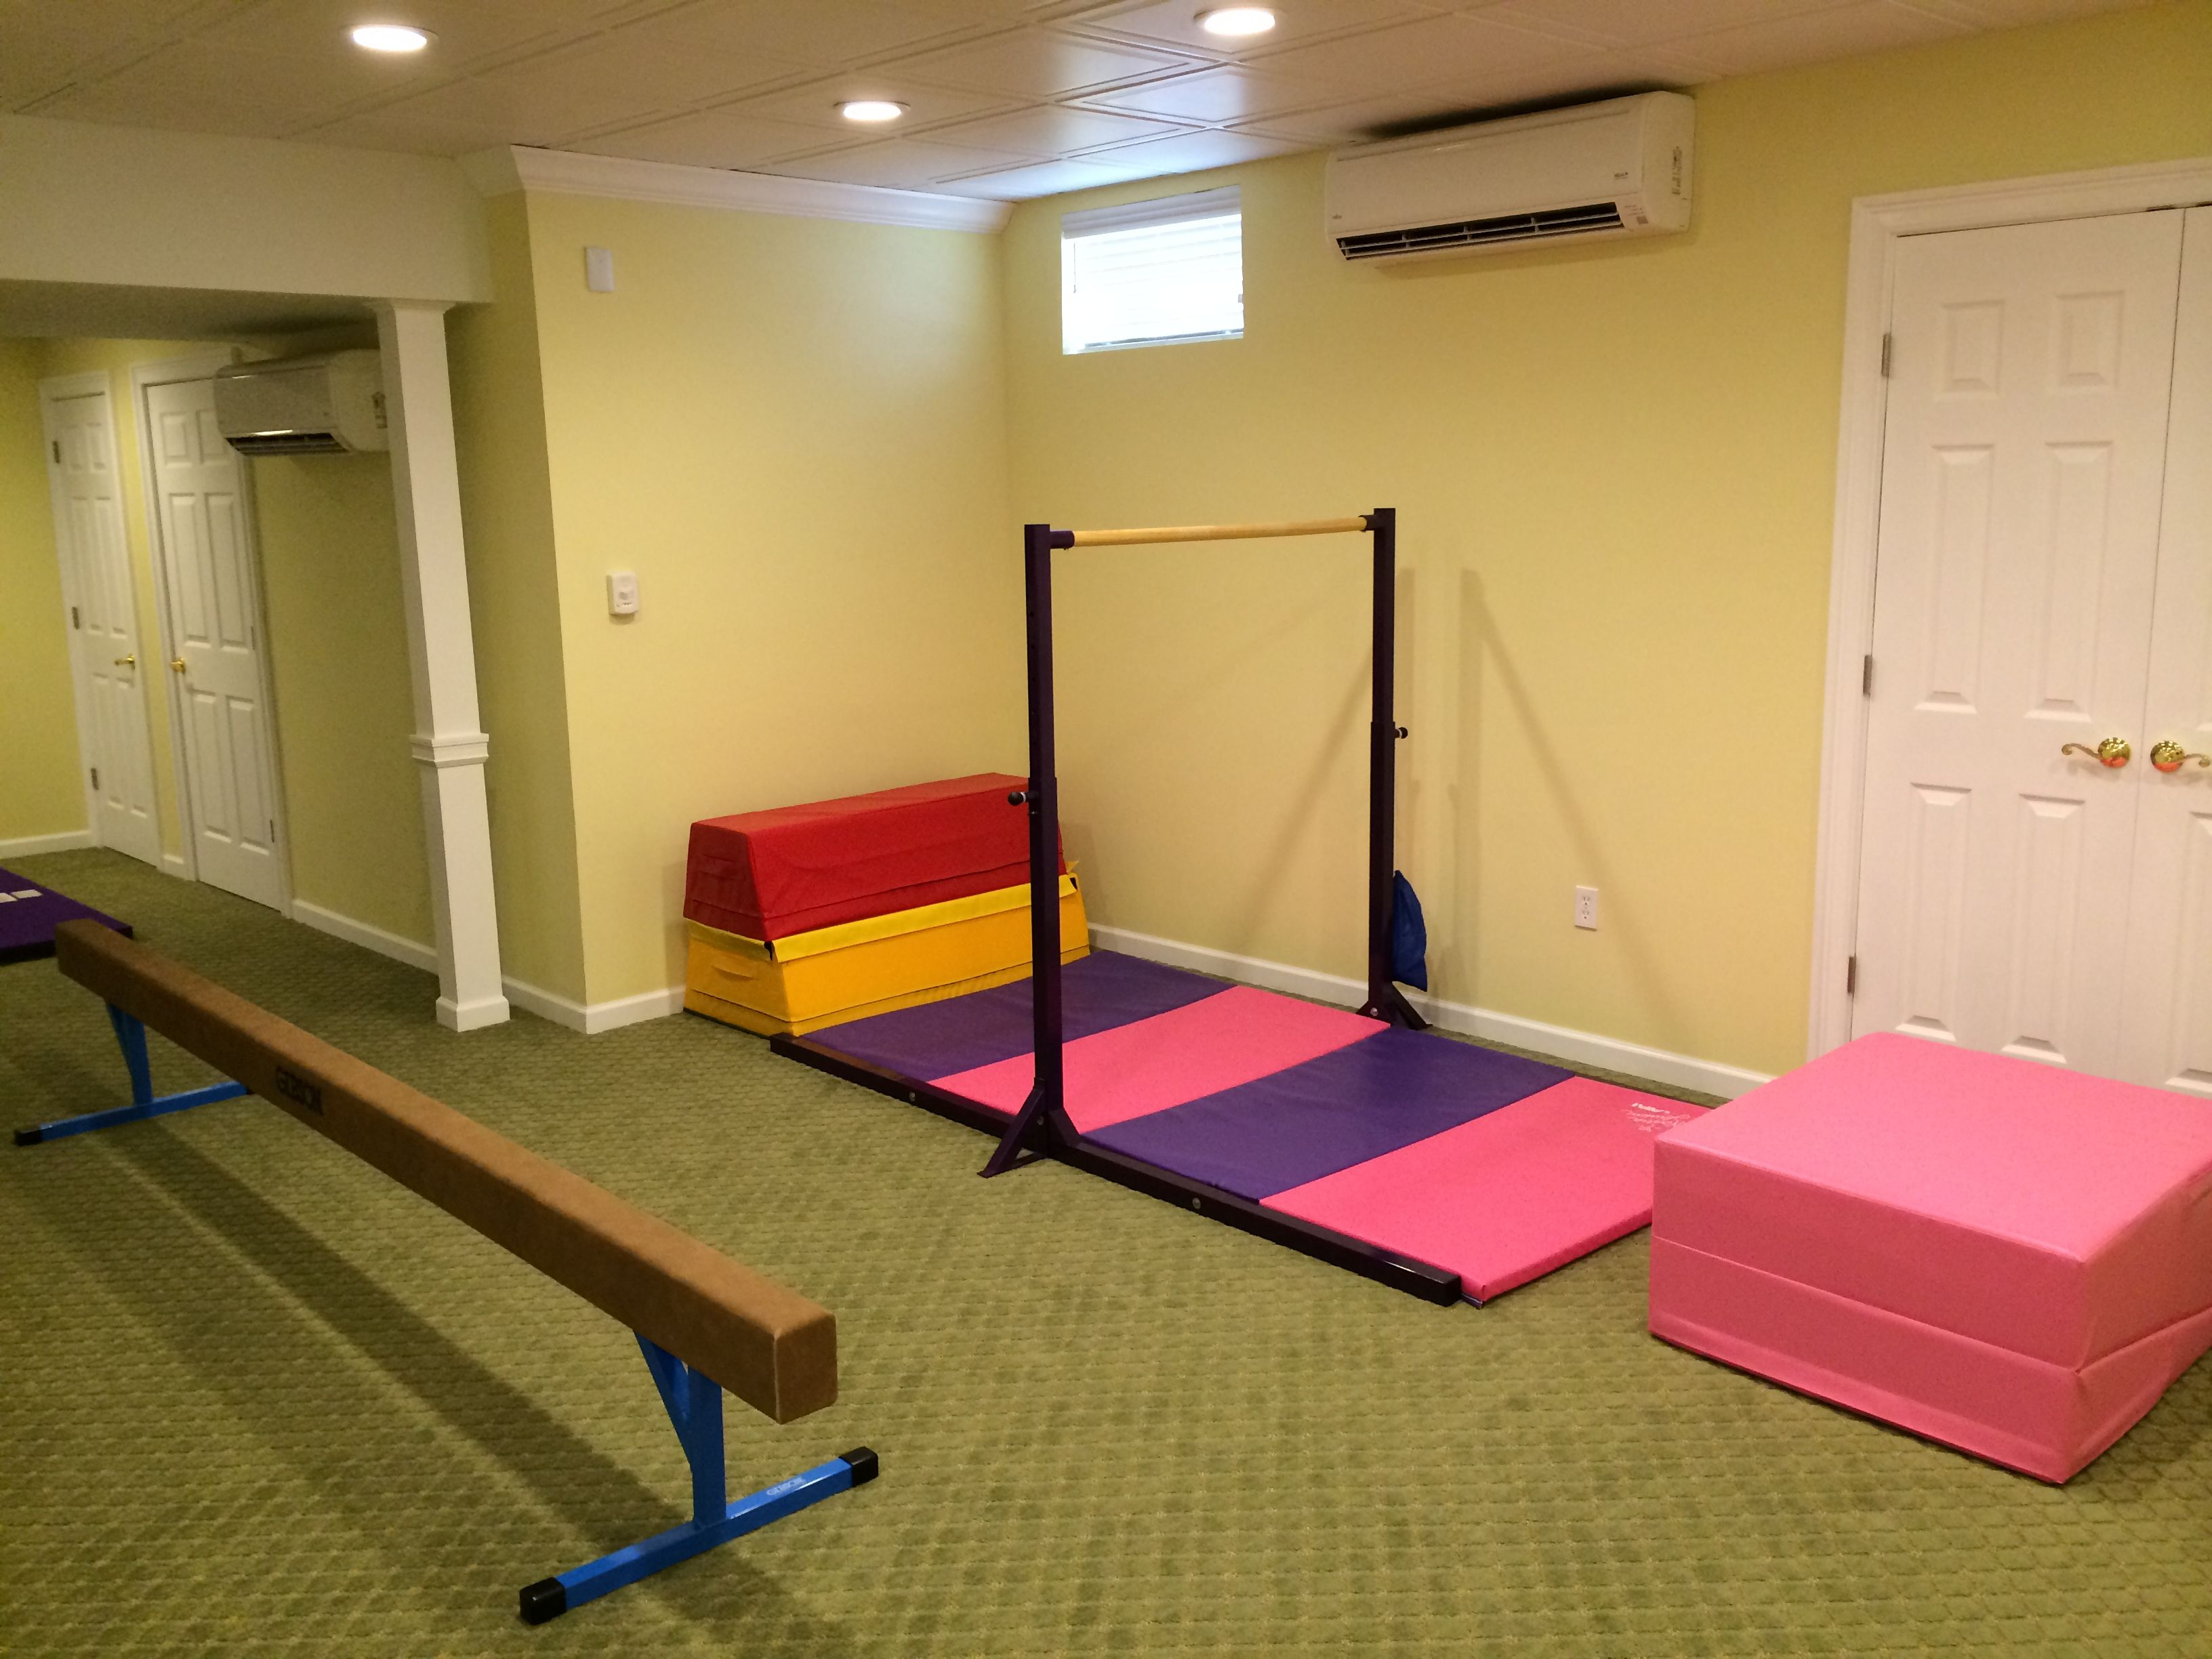 basement remodel with a kids gymnastics area